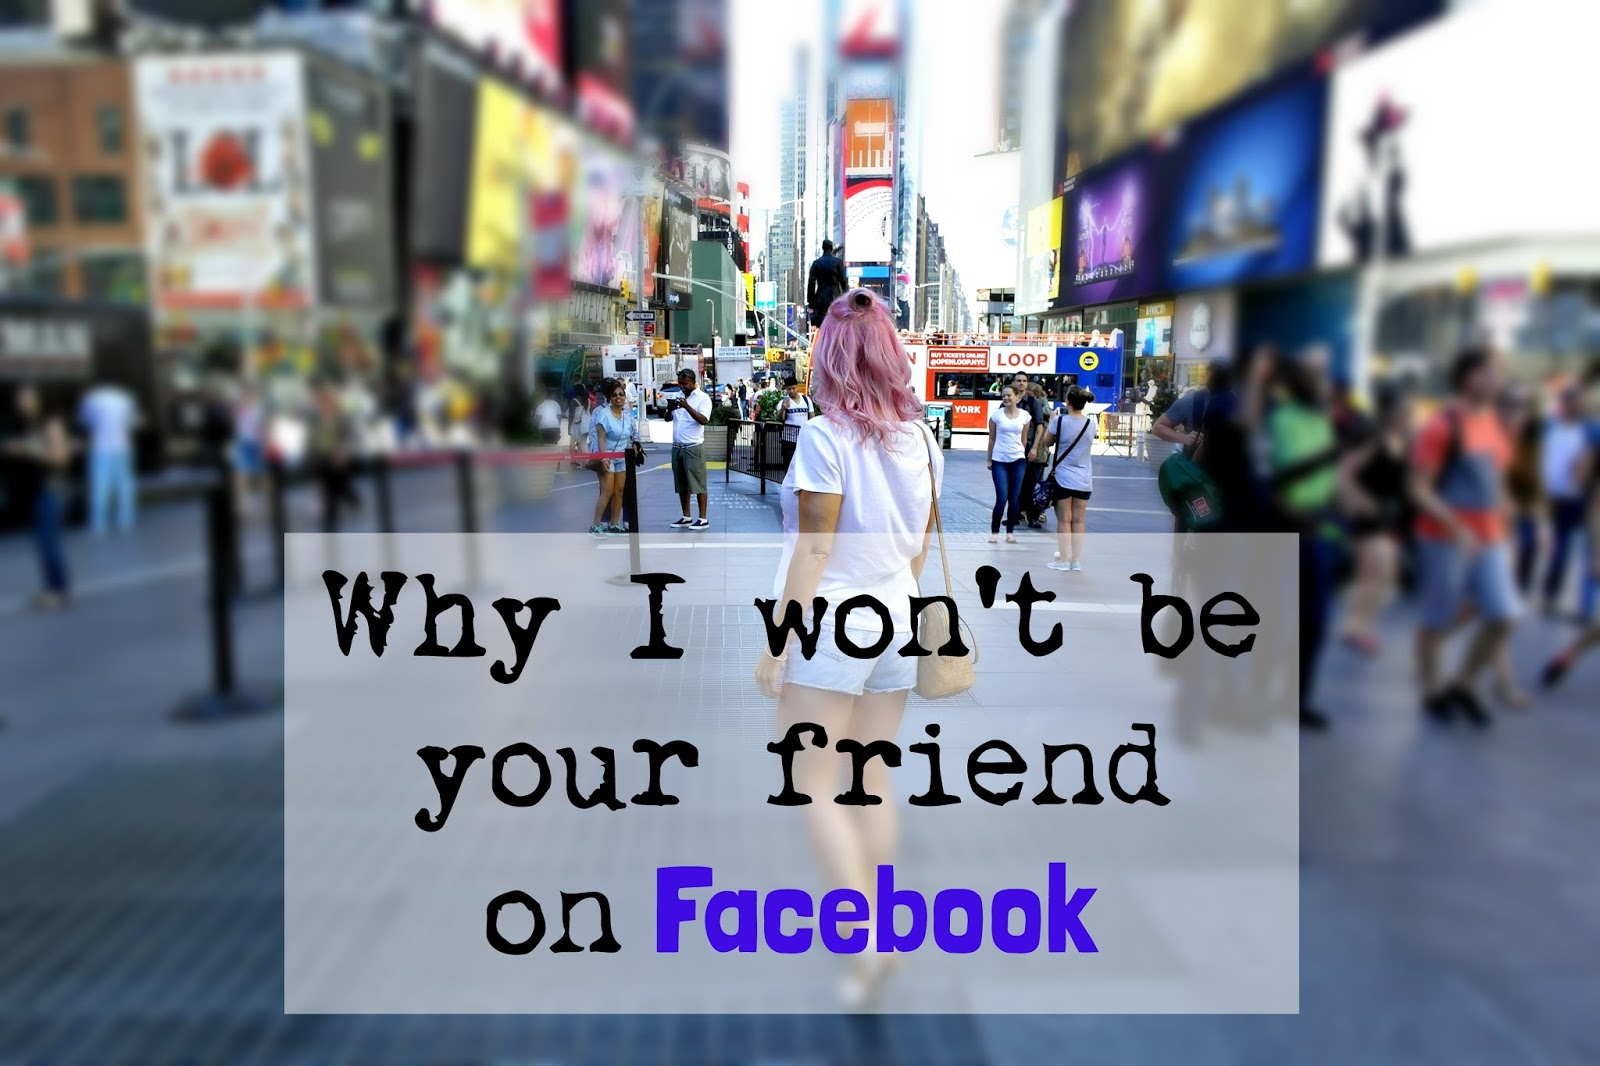 why I won't be your friend on Facebook